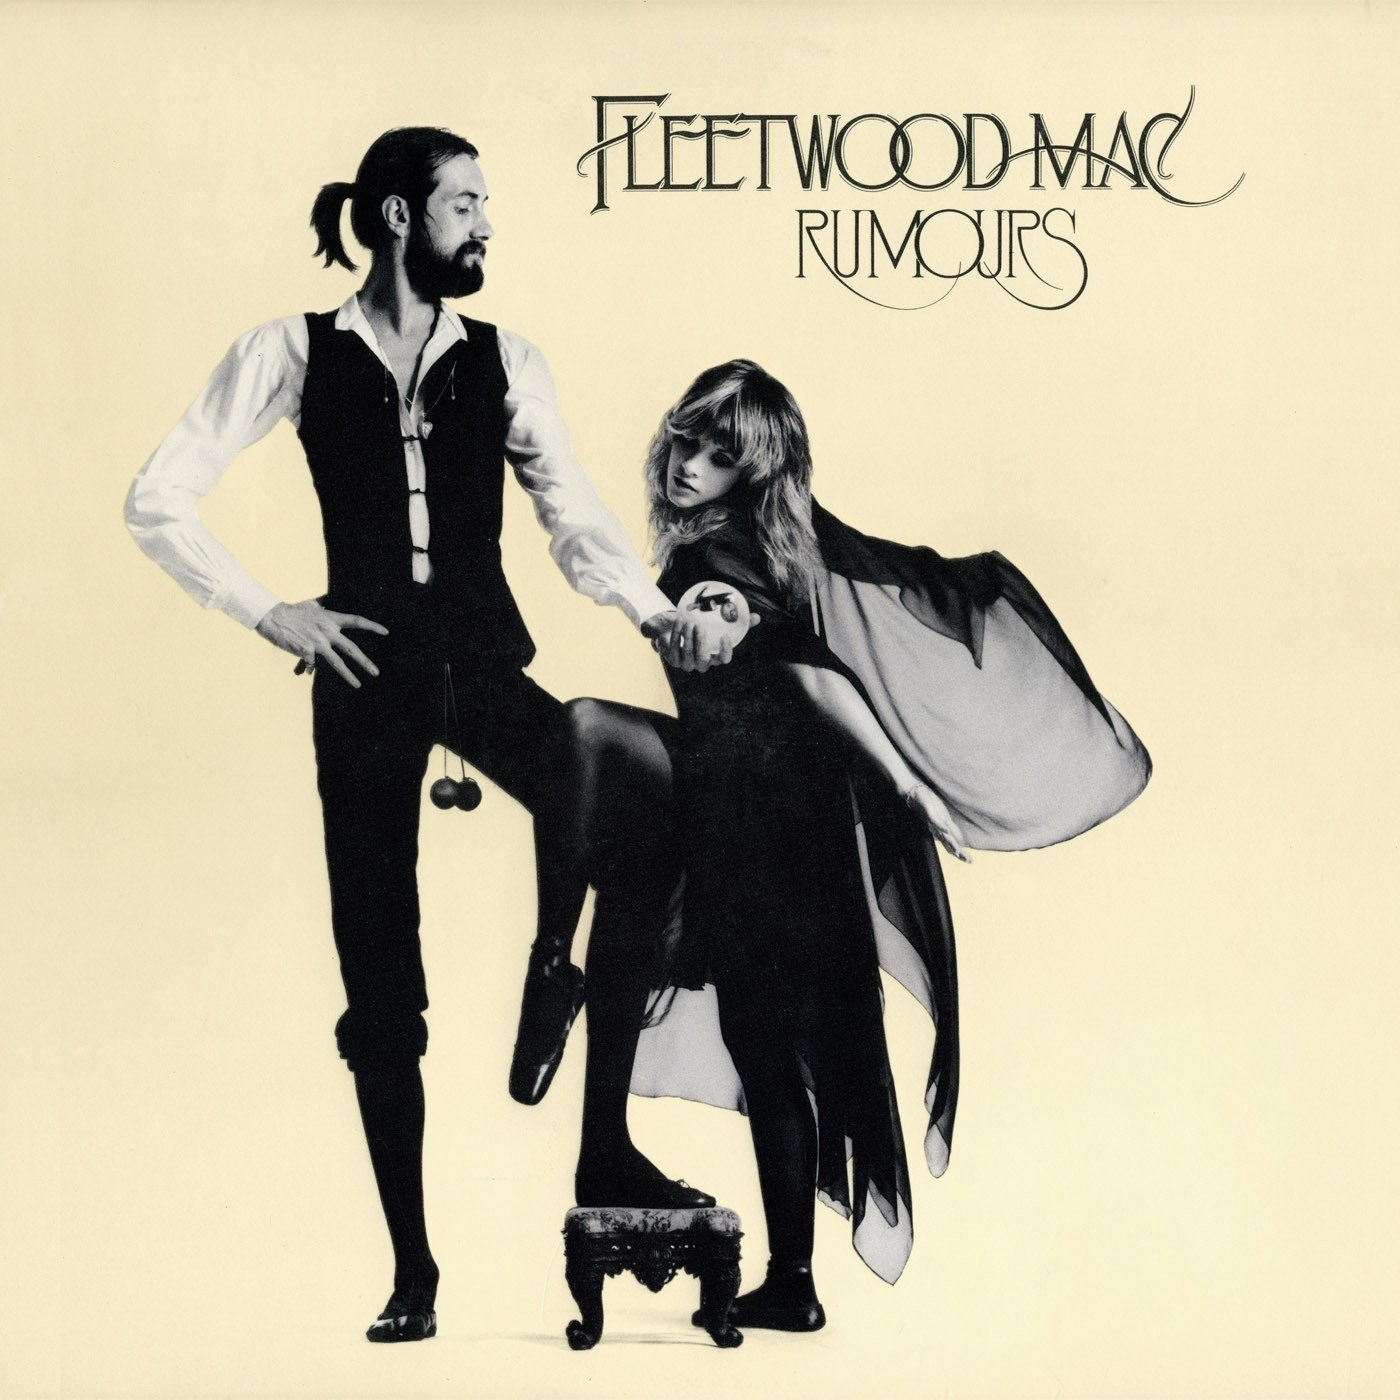 Rumors by Fleetwood Mac